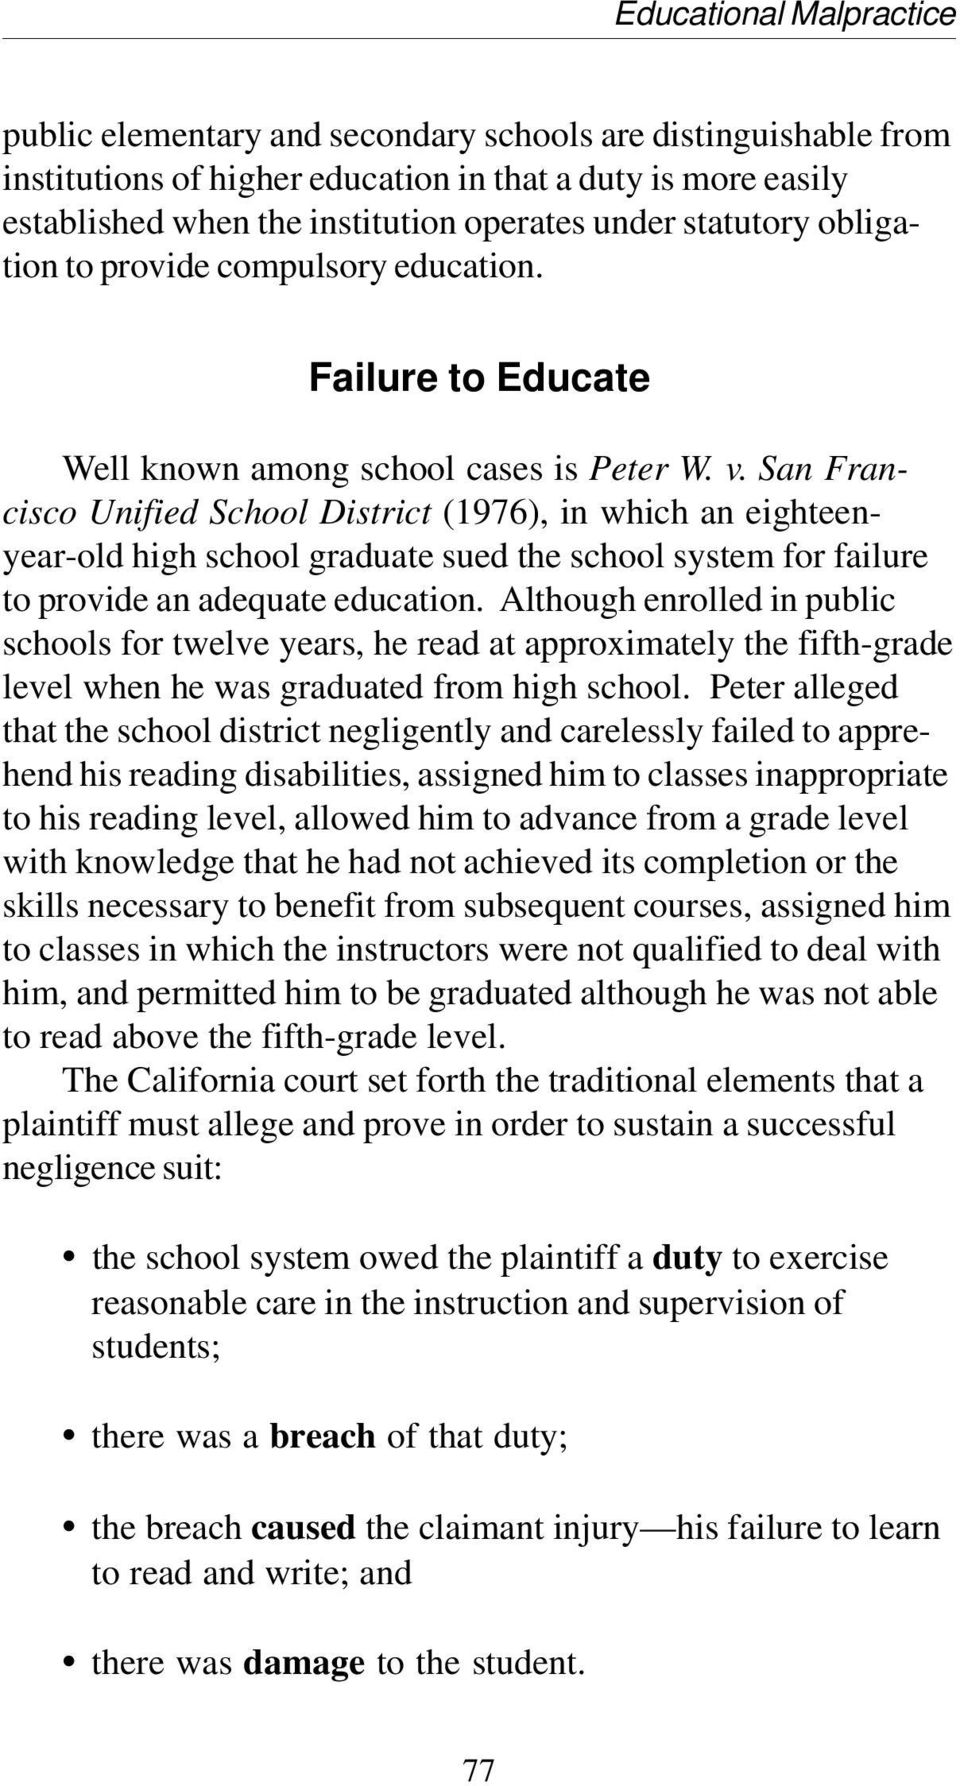 San Francisco Unified School District (1976), in which an eighteenyear-old high school graduate sued the school system for failure to provide an adequate education.